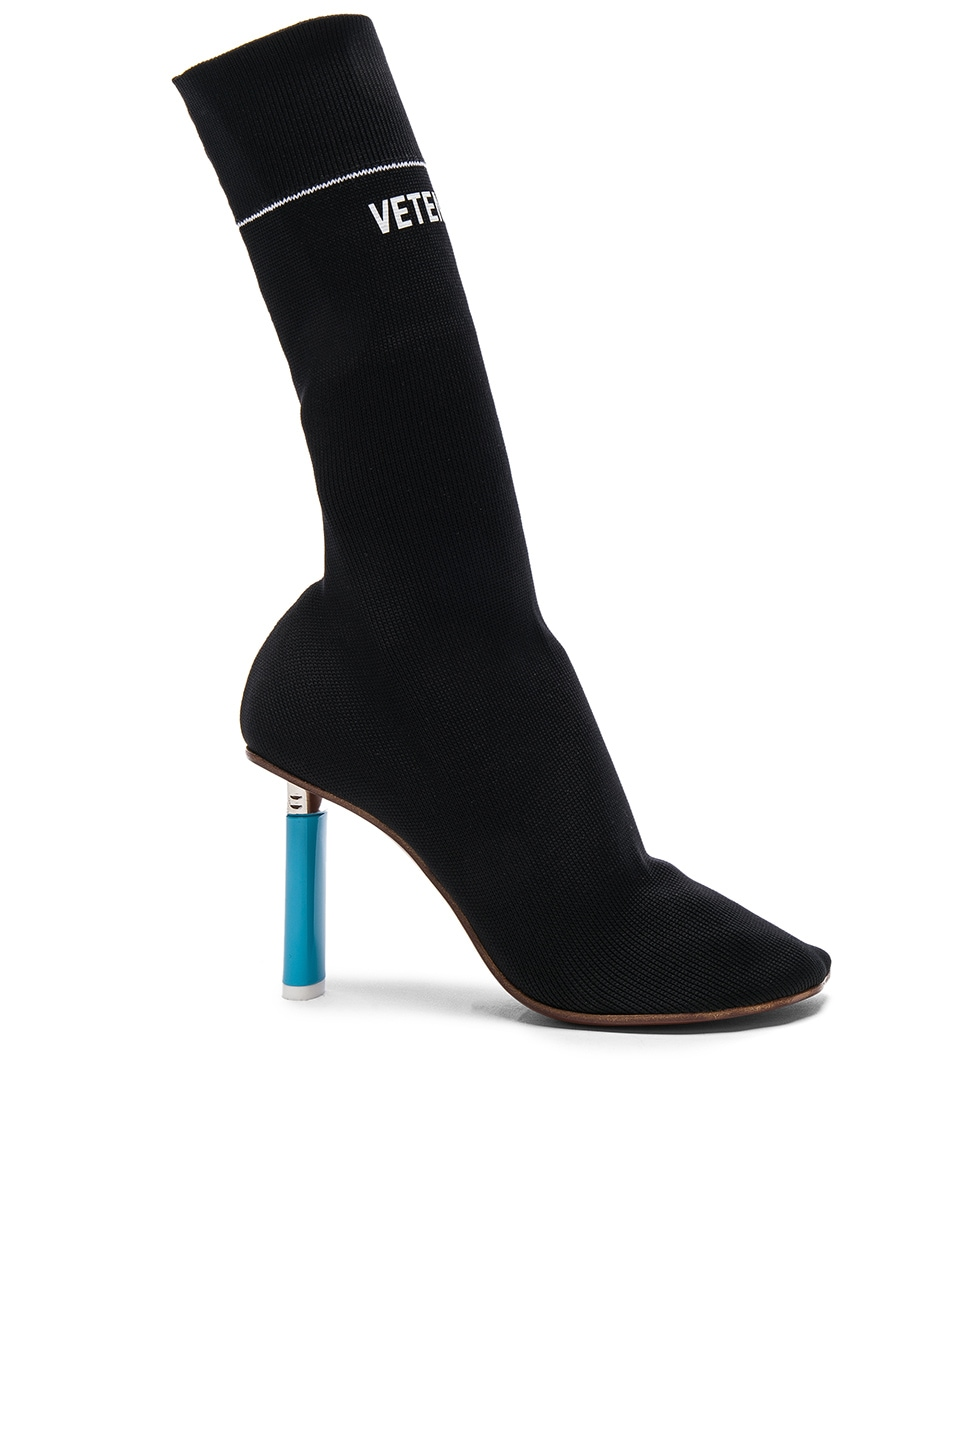 Image 1 of VETEMENTS Sock Ankle Boots in Black & Blue